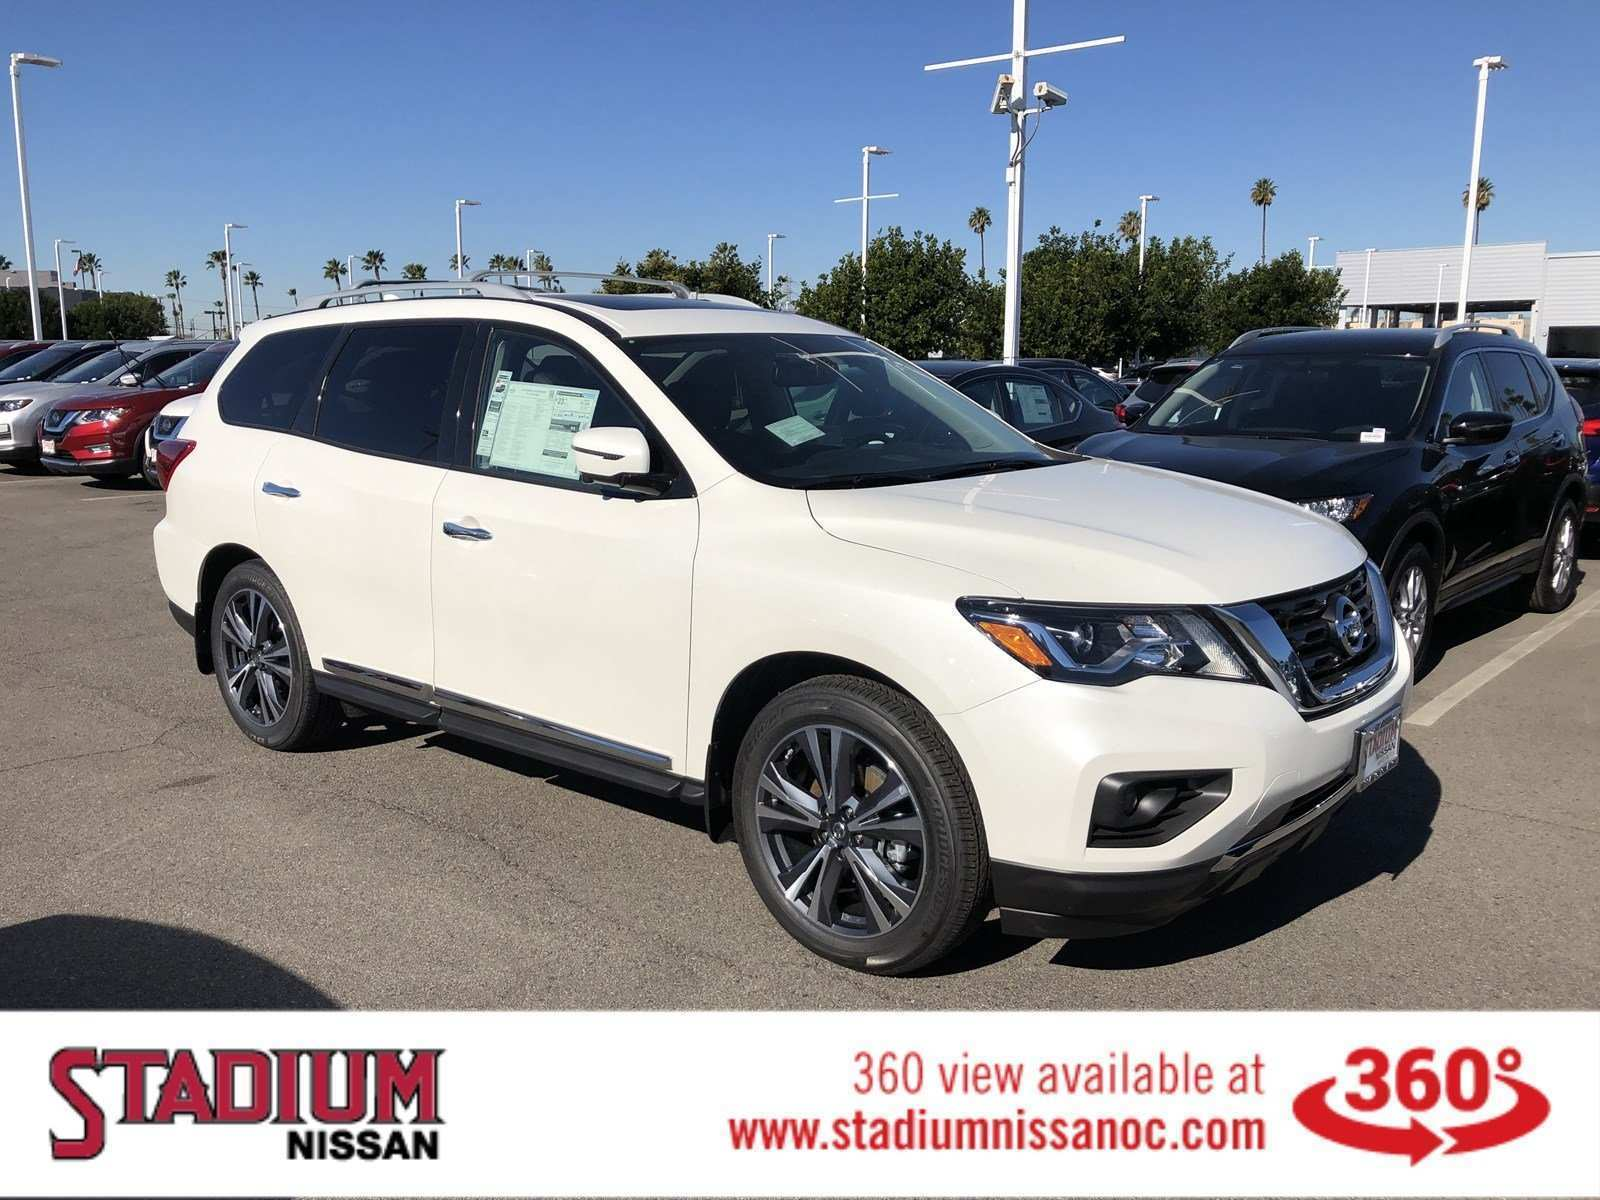 57 Great 2019 Nissan Pathfinder Platinum Specs and Review with 2019 Nissan Pathfinder Platinum